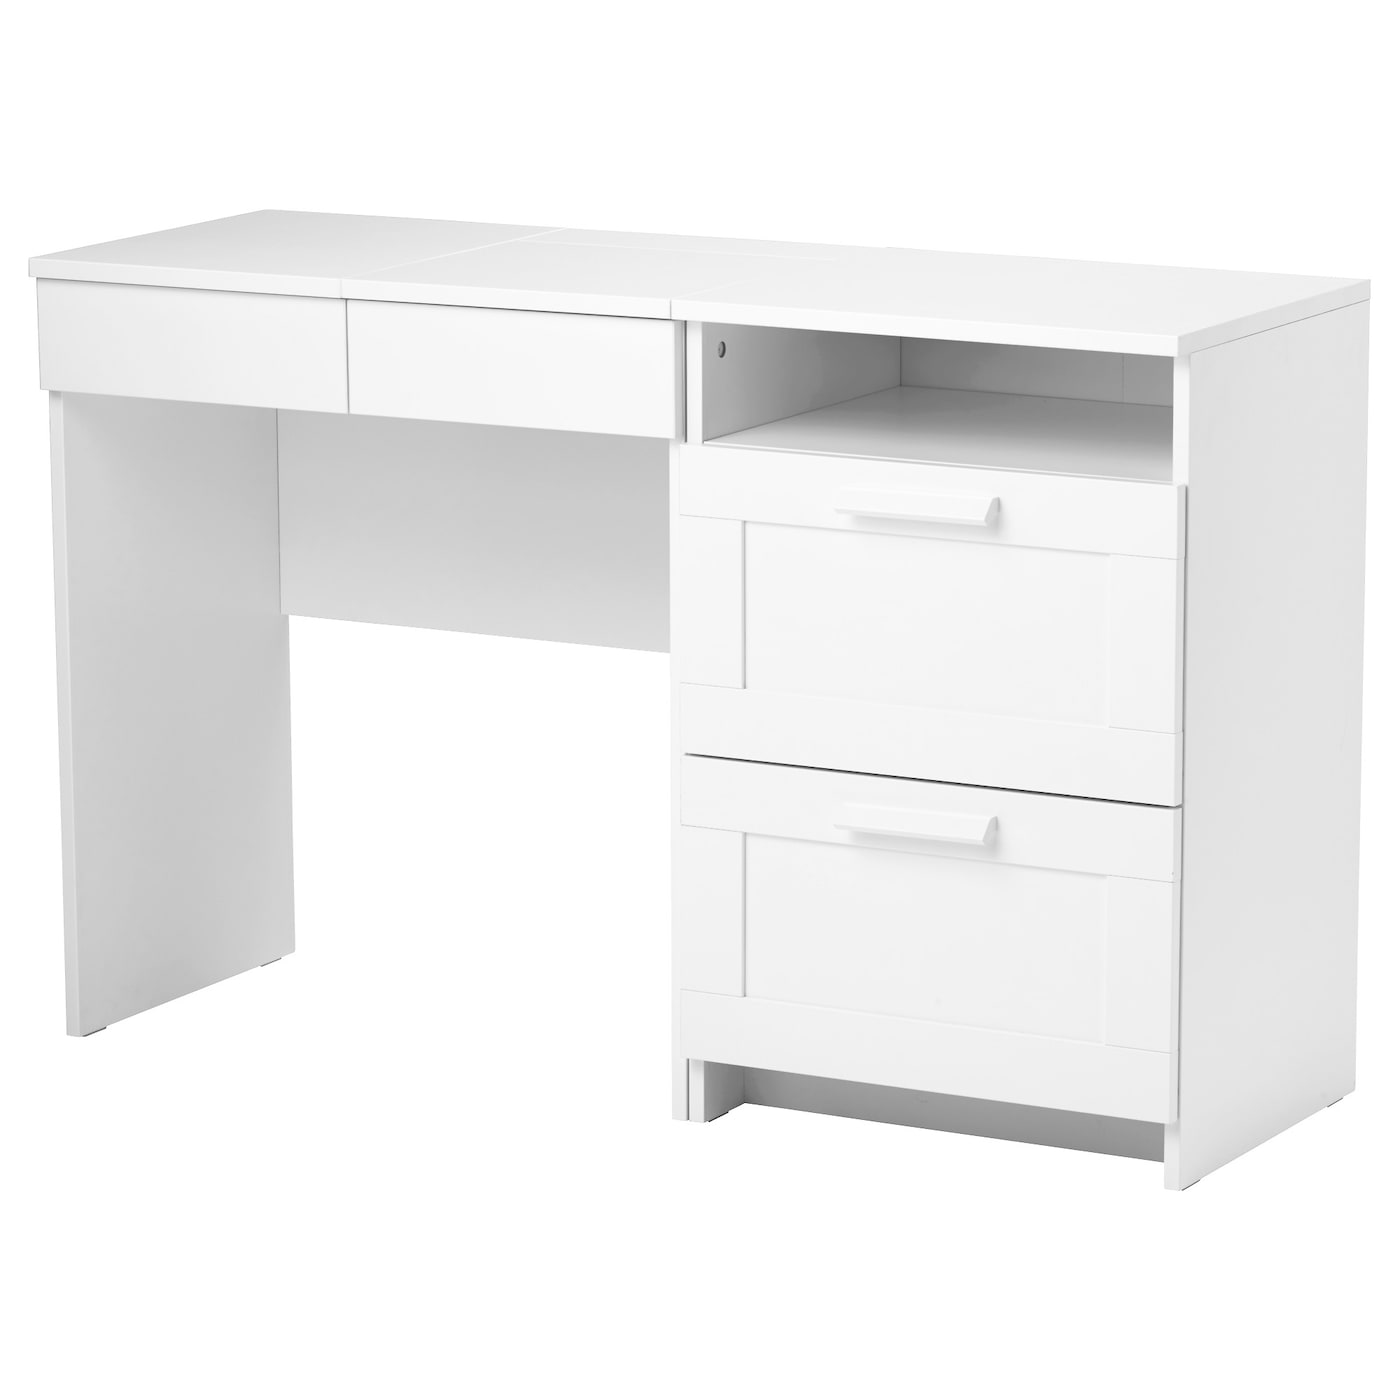 brimnes coiffeuse commode 2 tiroirs blanc ikea. Black Bedroom Furniture Sets. Home Design Ideas